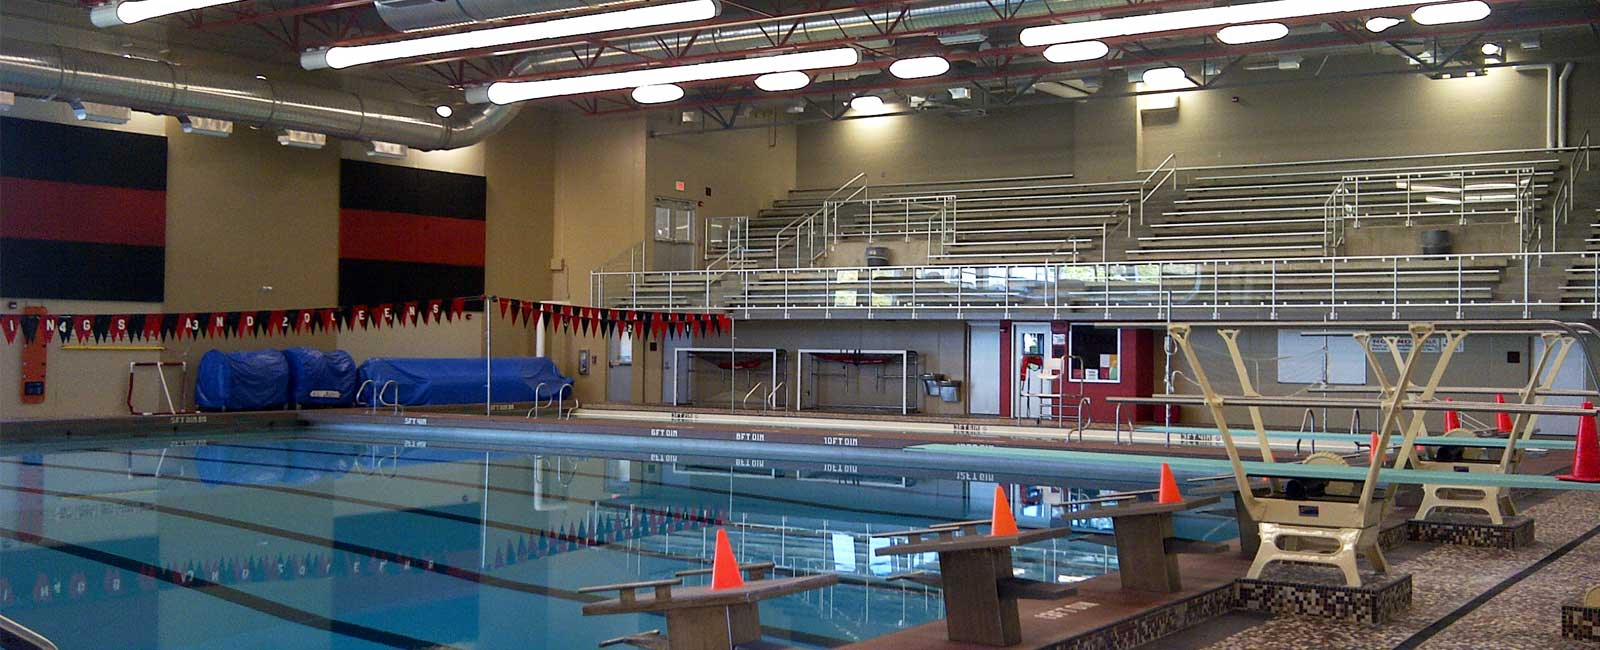 Clinton High School Pool, Tri-City Electric Co., Davenport